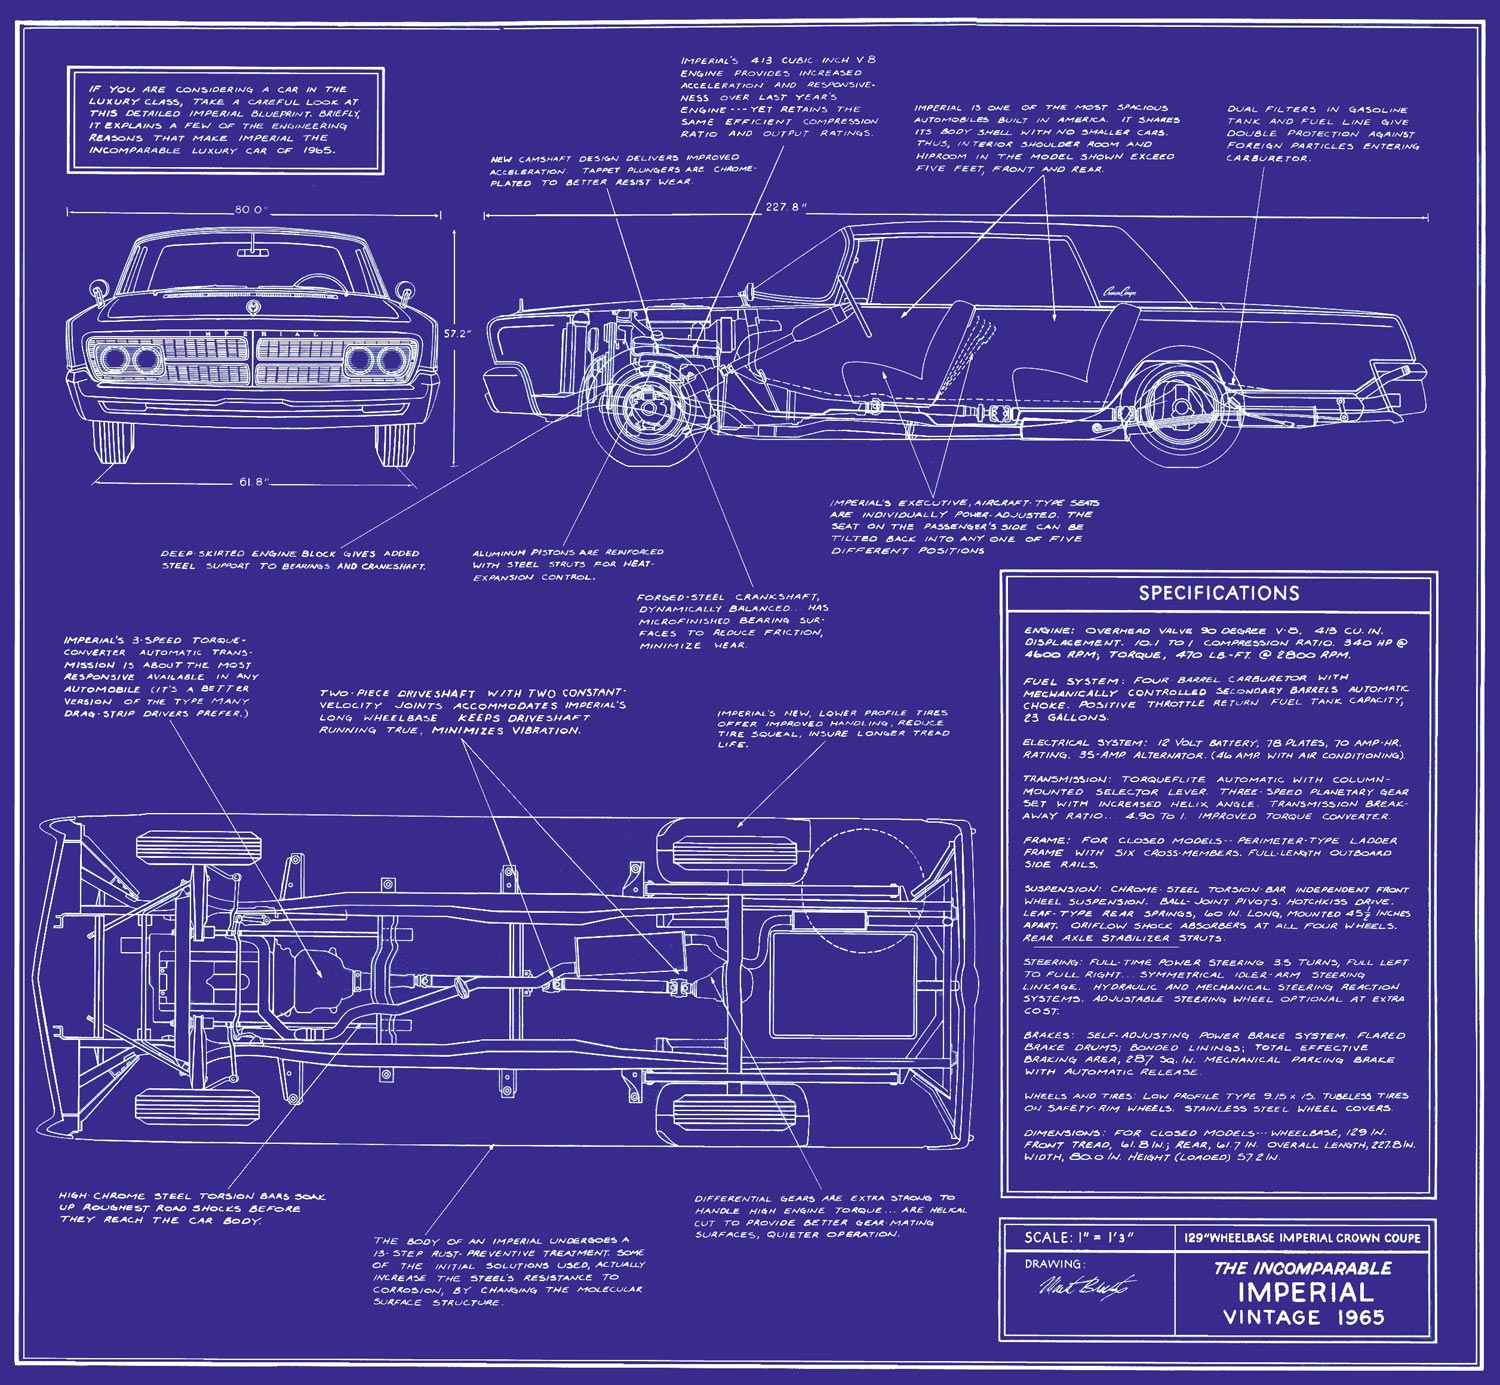 1965 Chrysler Imperial Blueprint